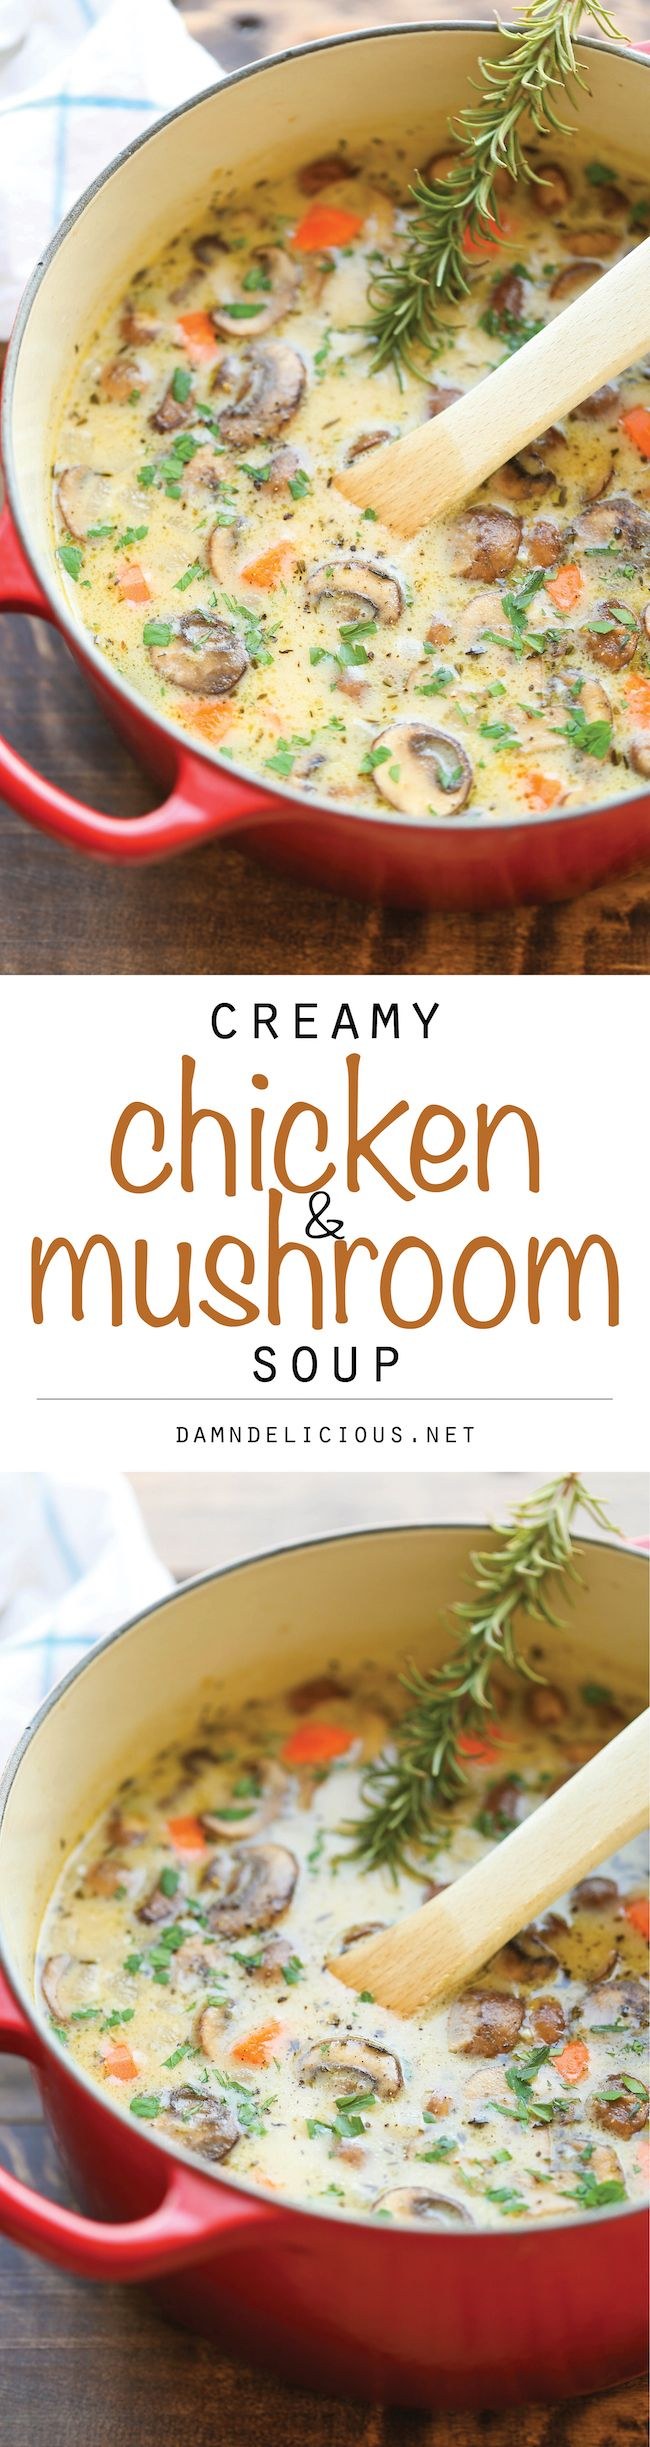 Creamy Chicken And Mushroom Soup Recipe Soups Chowder Bisque